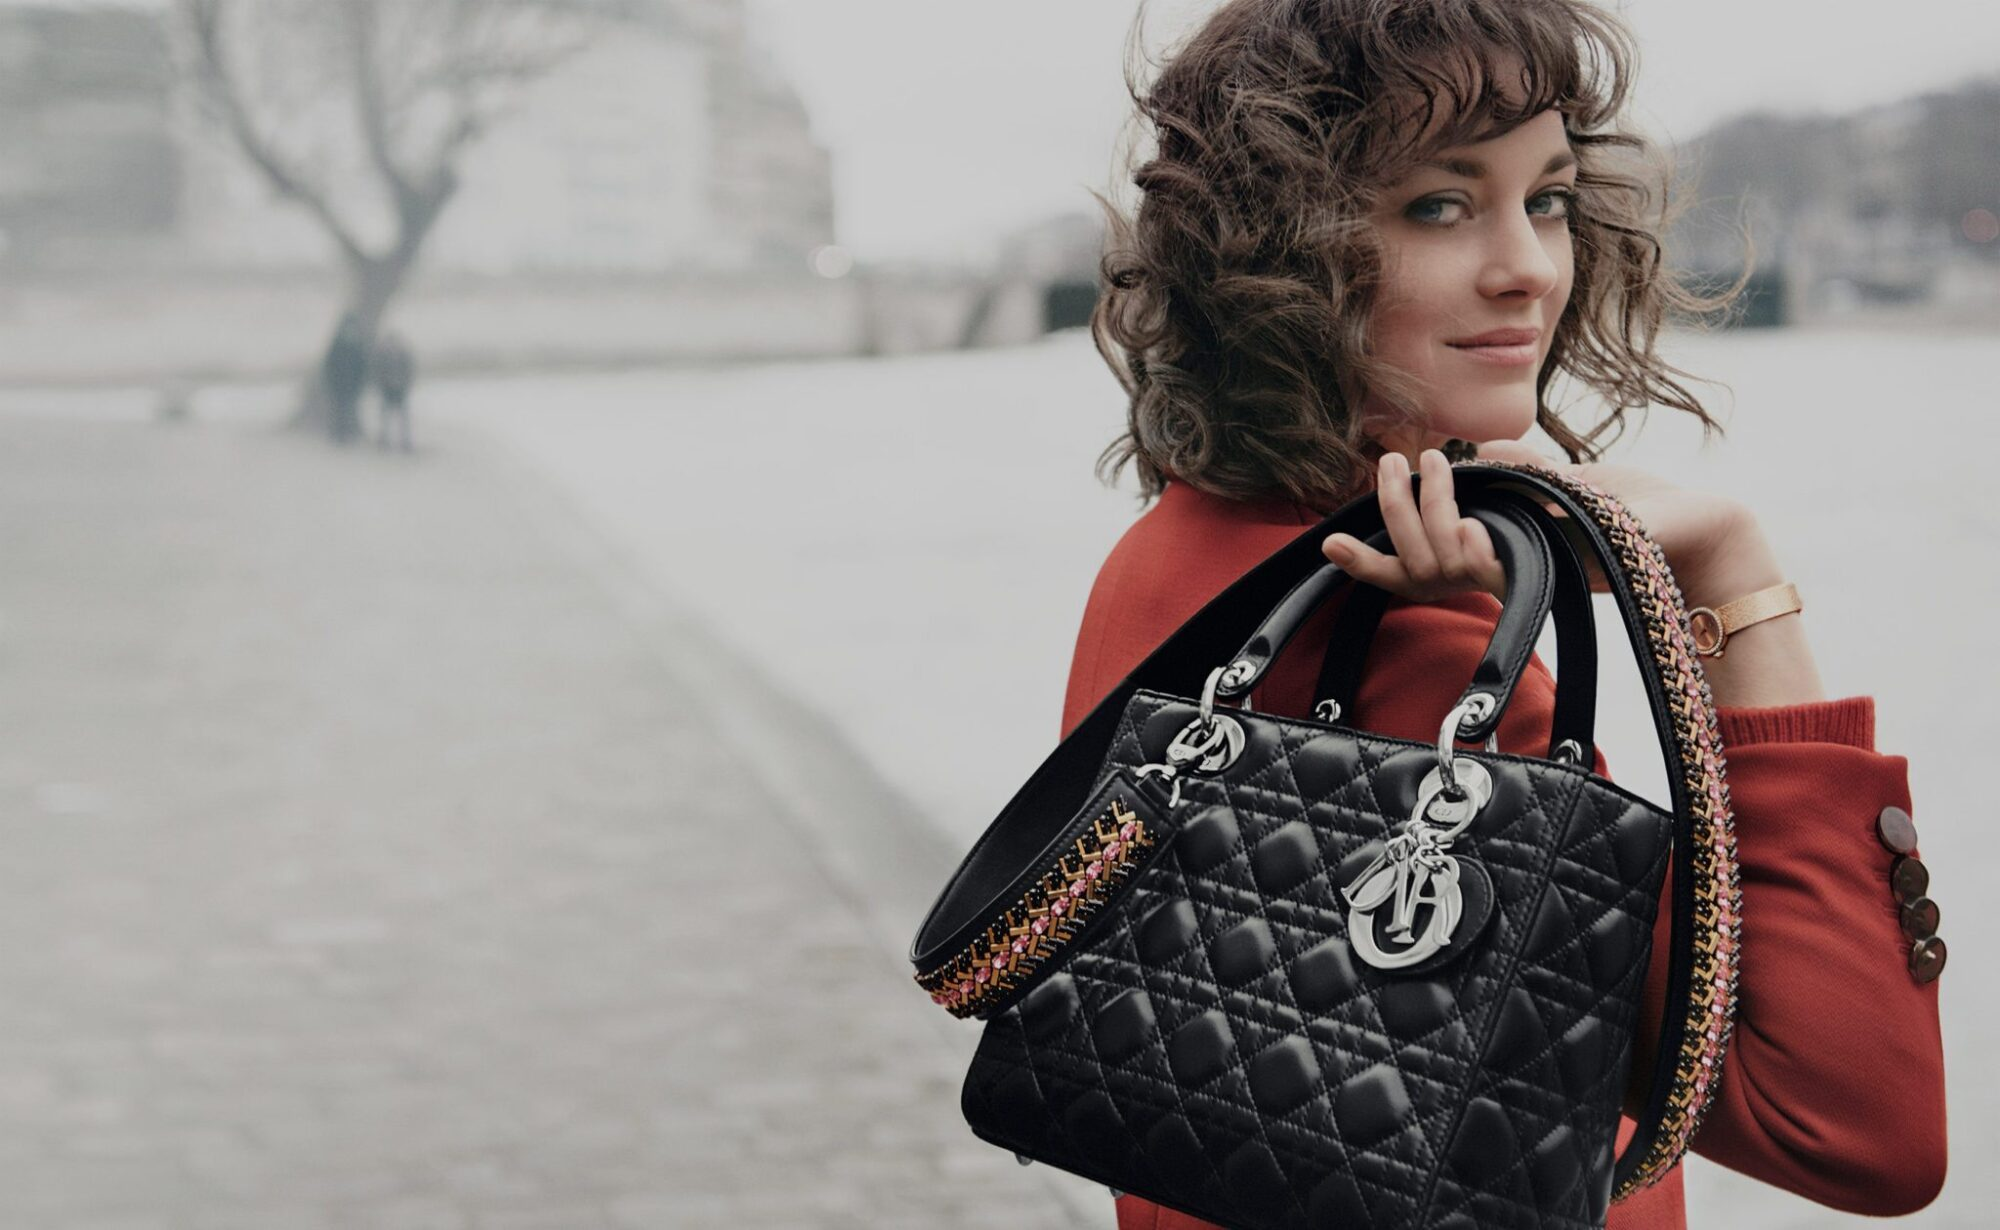 Marion Cotillard in the Newest Lady Dior 2019 Campaign images